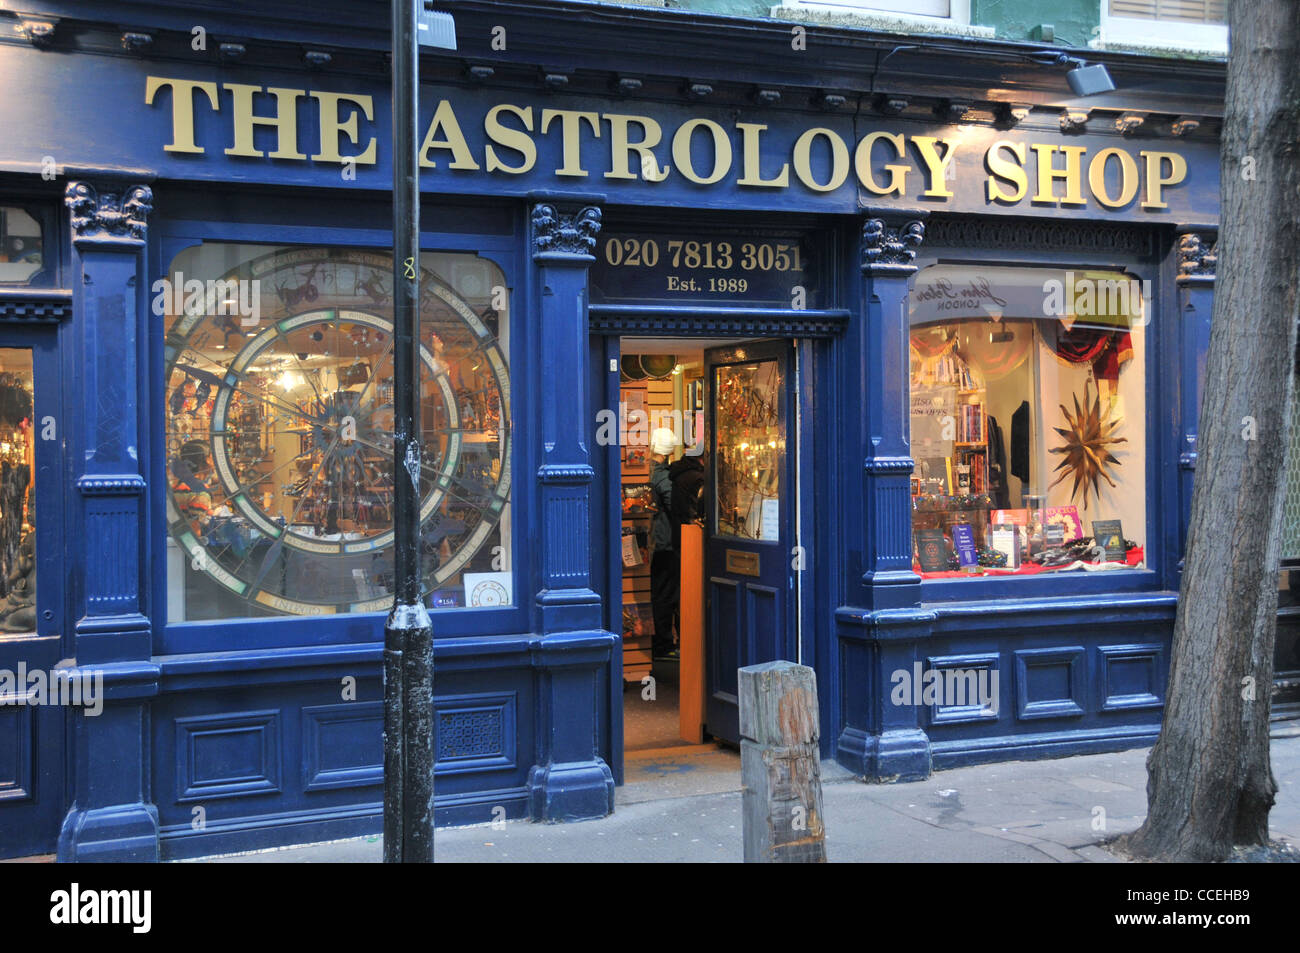 The Astrology Shop Covent Garden London Stock Photo, Royalty Free ...